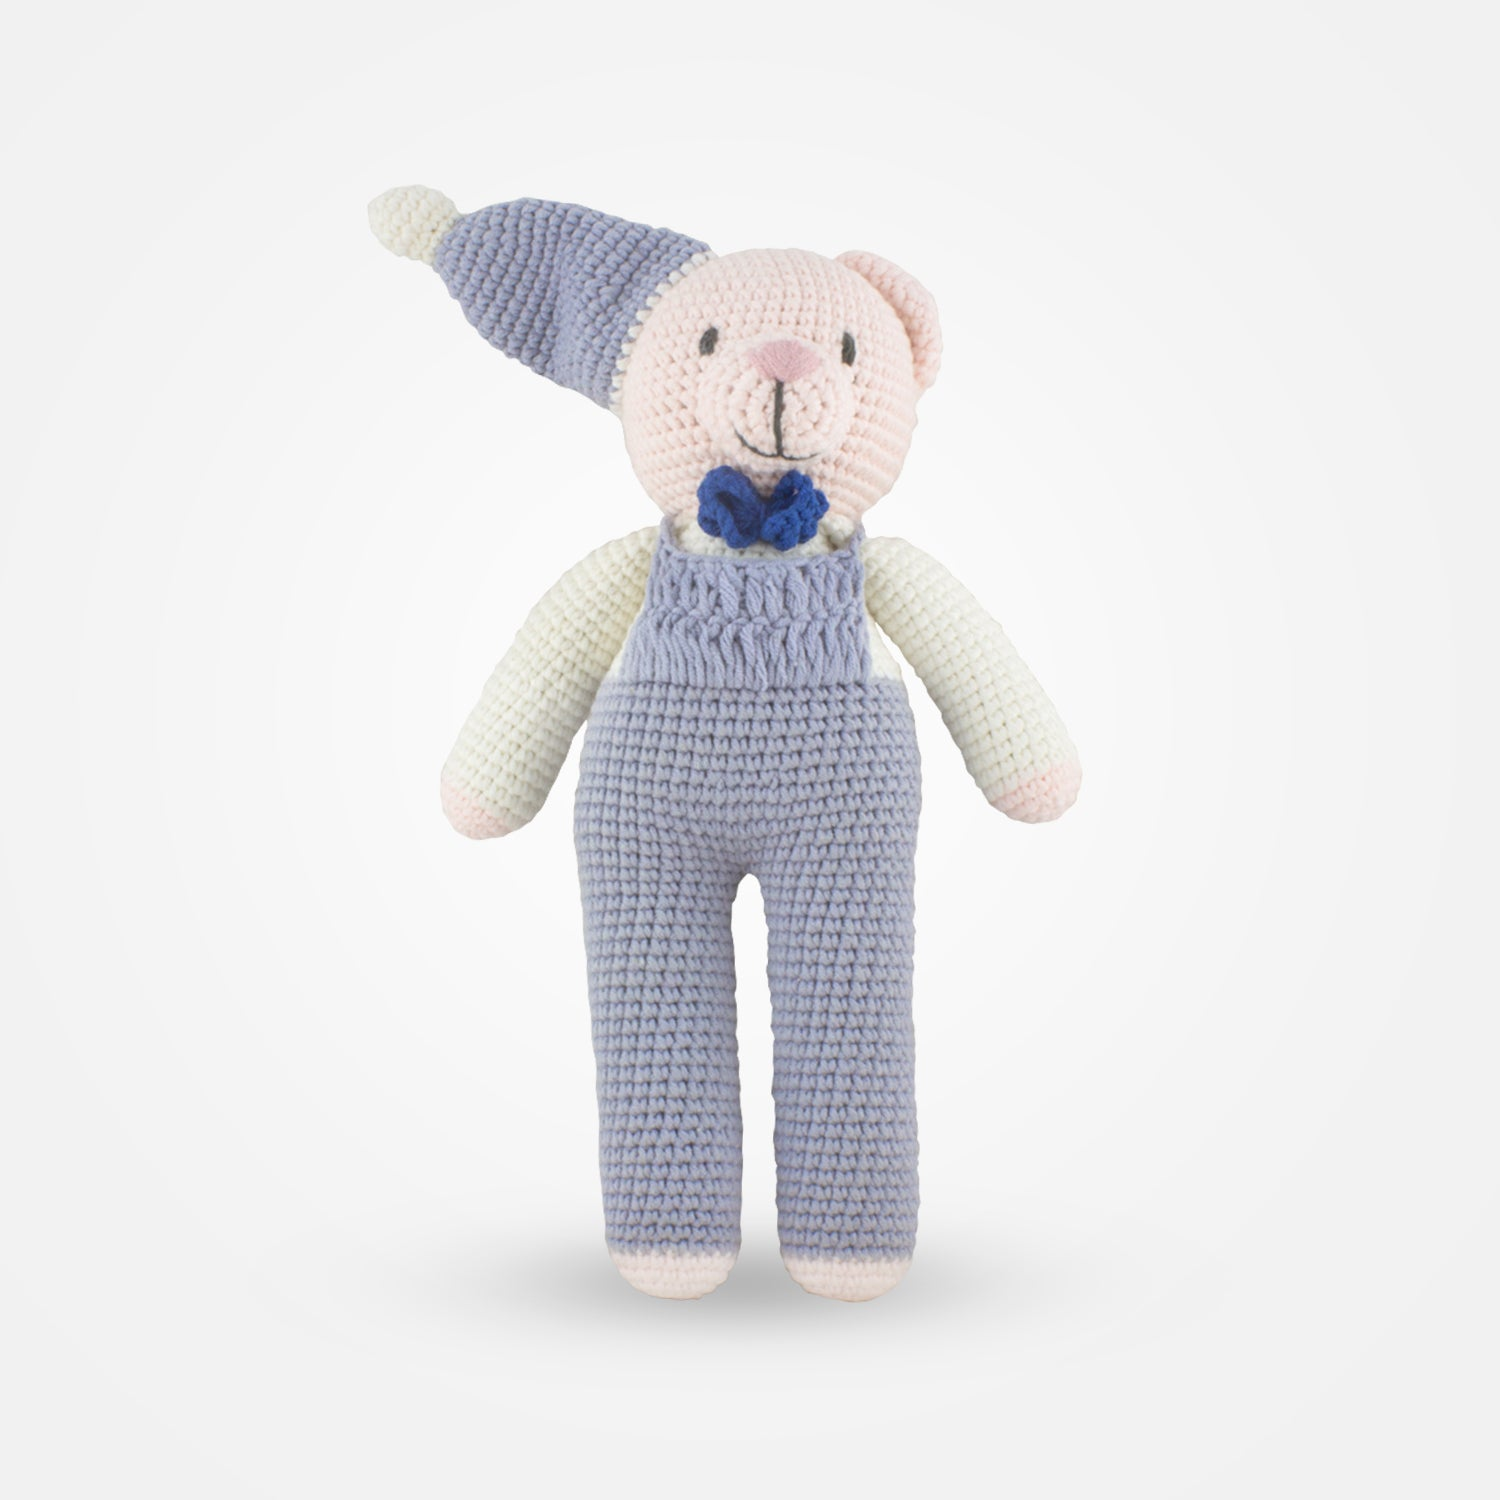 Gio - Handmade Crochet Soft Toy